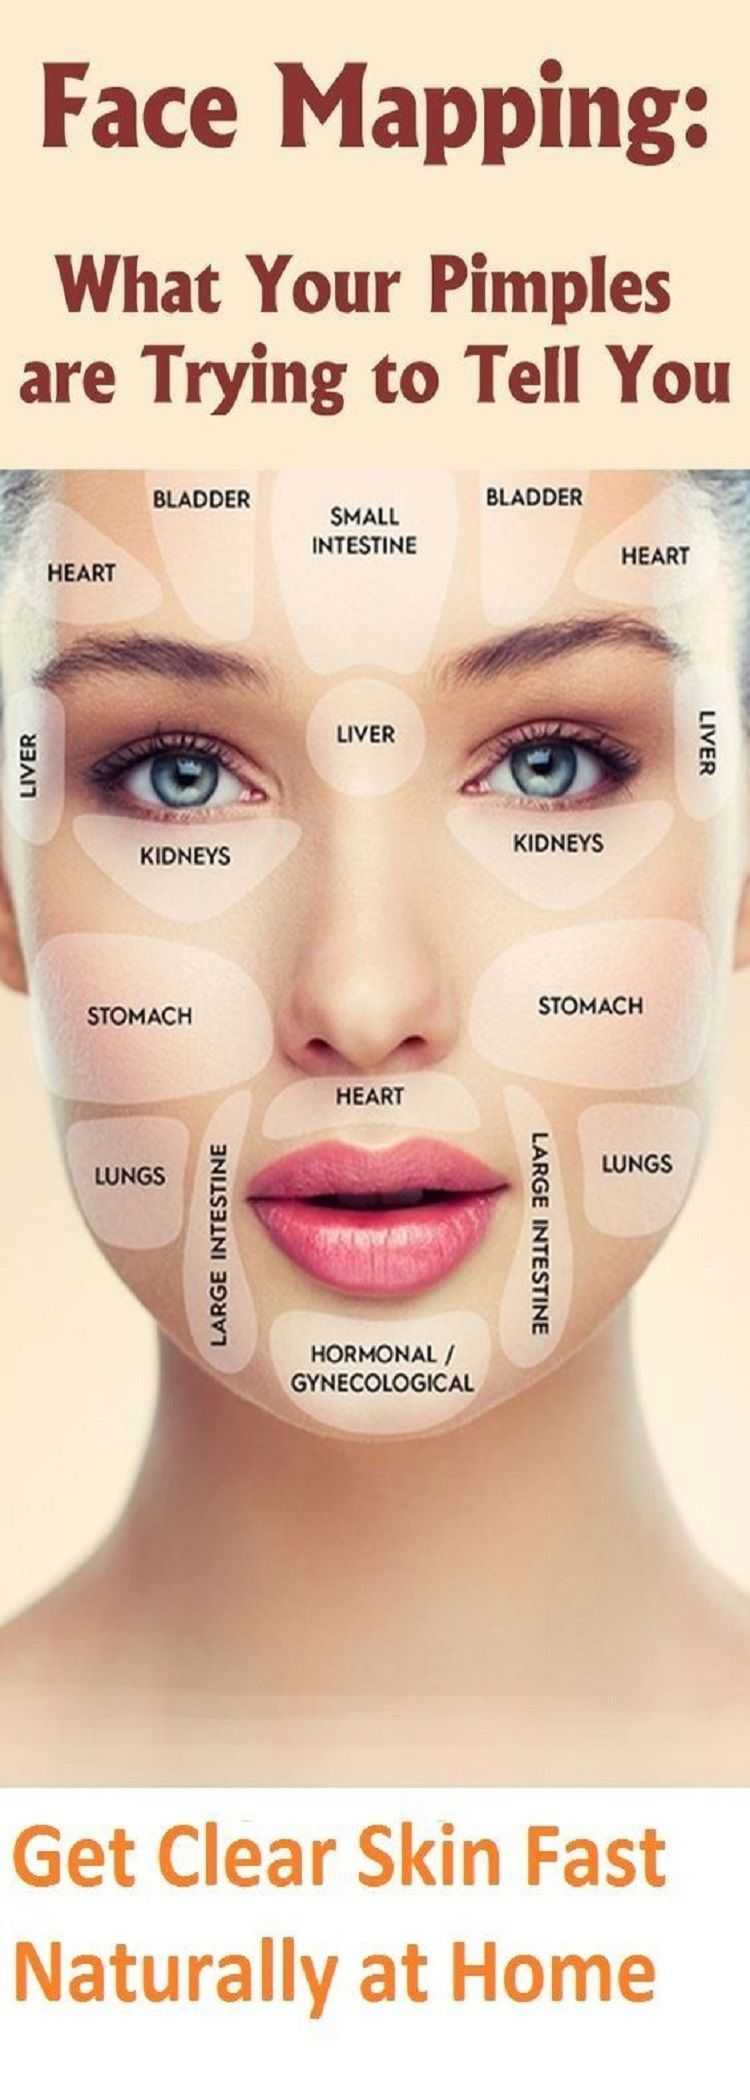 Anti Aging Skin Care Products. Achieve a flawless look